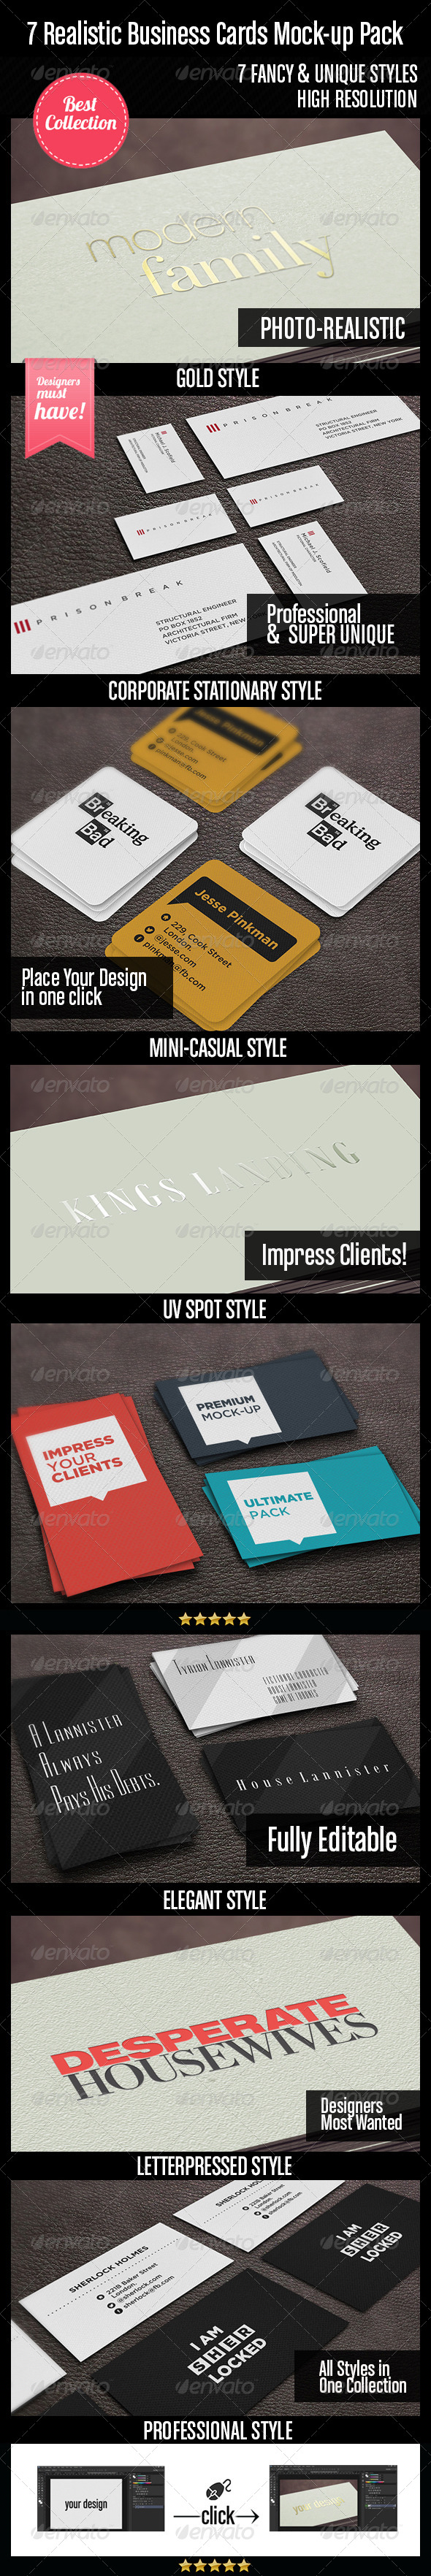 GraphicRiver 7 Realistic Business Cards Mock-up Pack 4508809